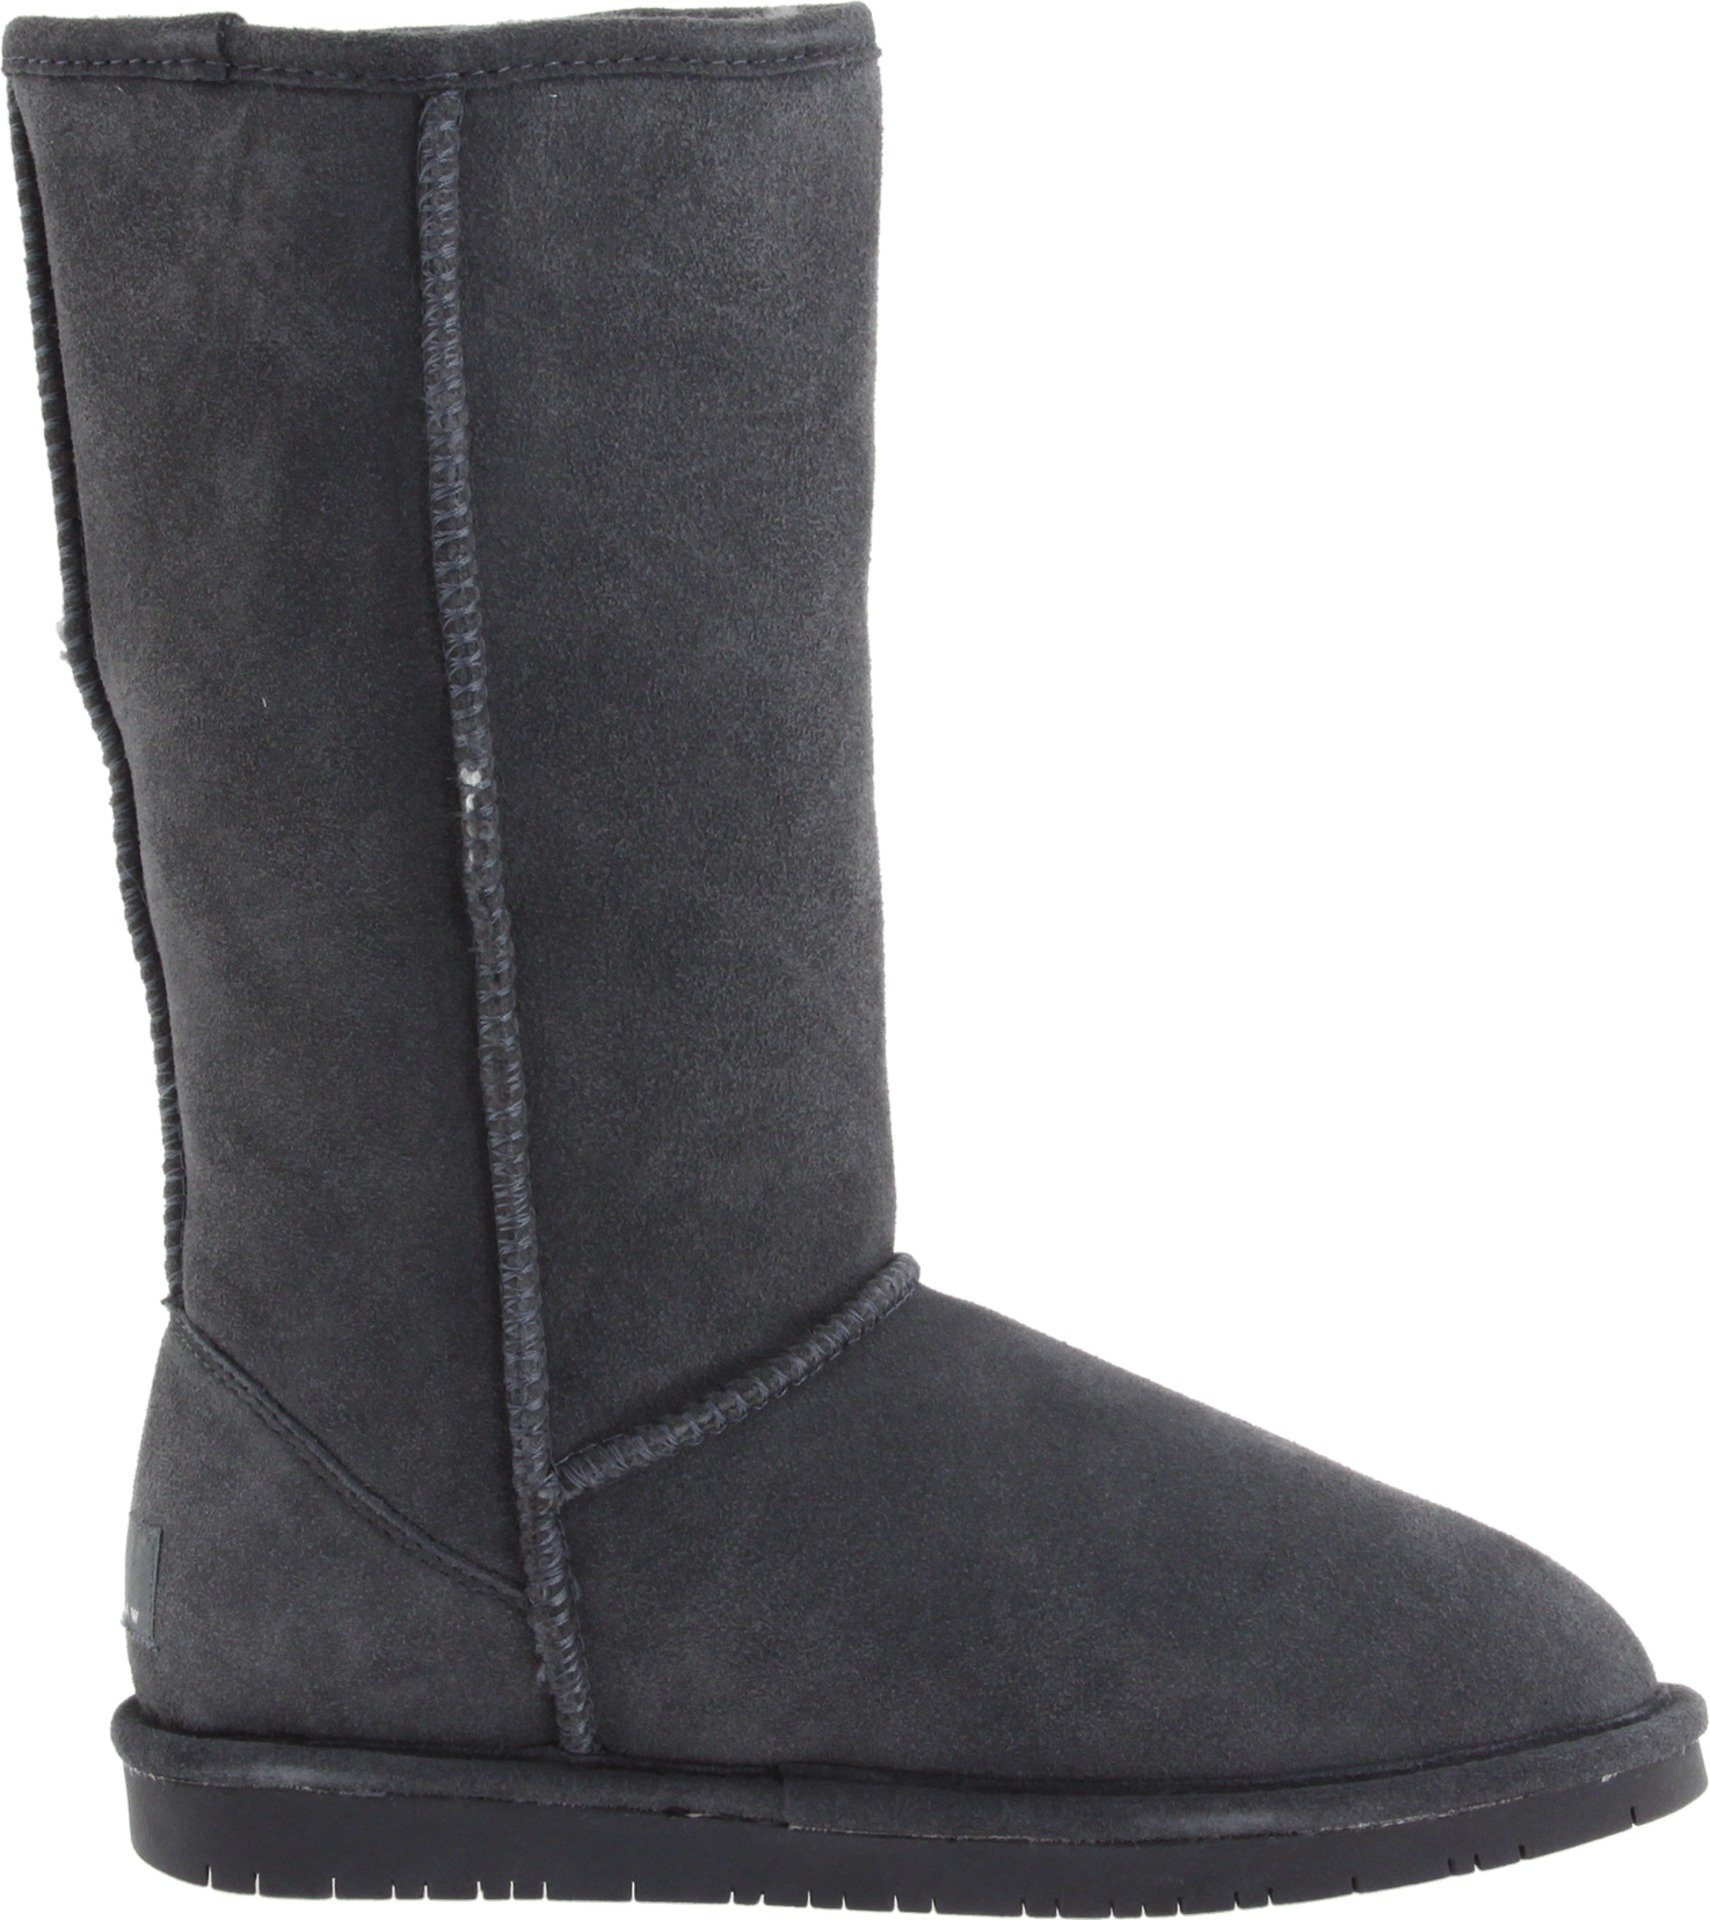 BEARPAW Women's Emma Tall Winter Boot, Charcoal, 9 M US by BEARPAW (Image #6)